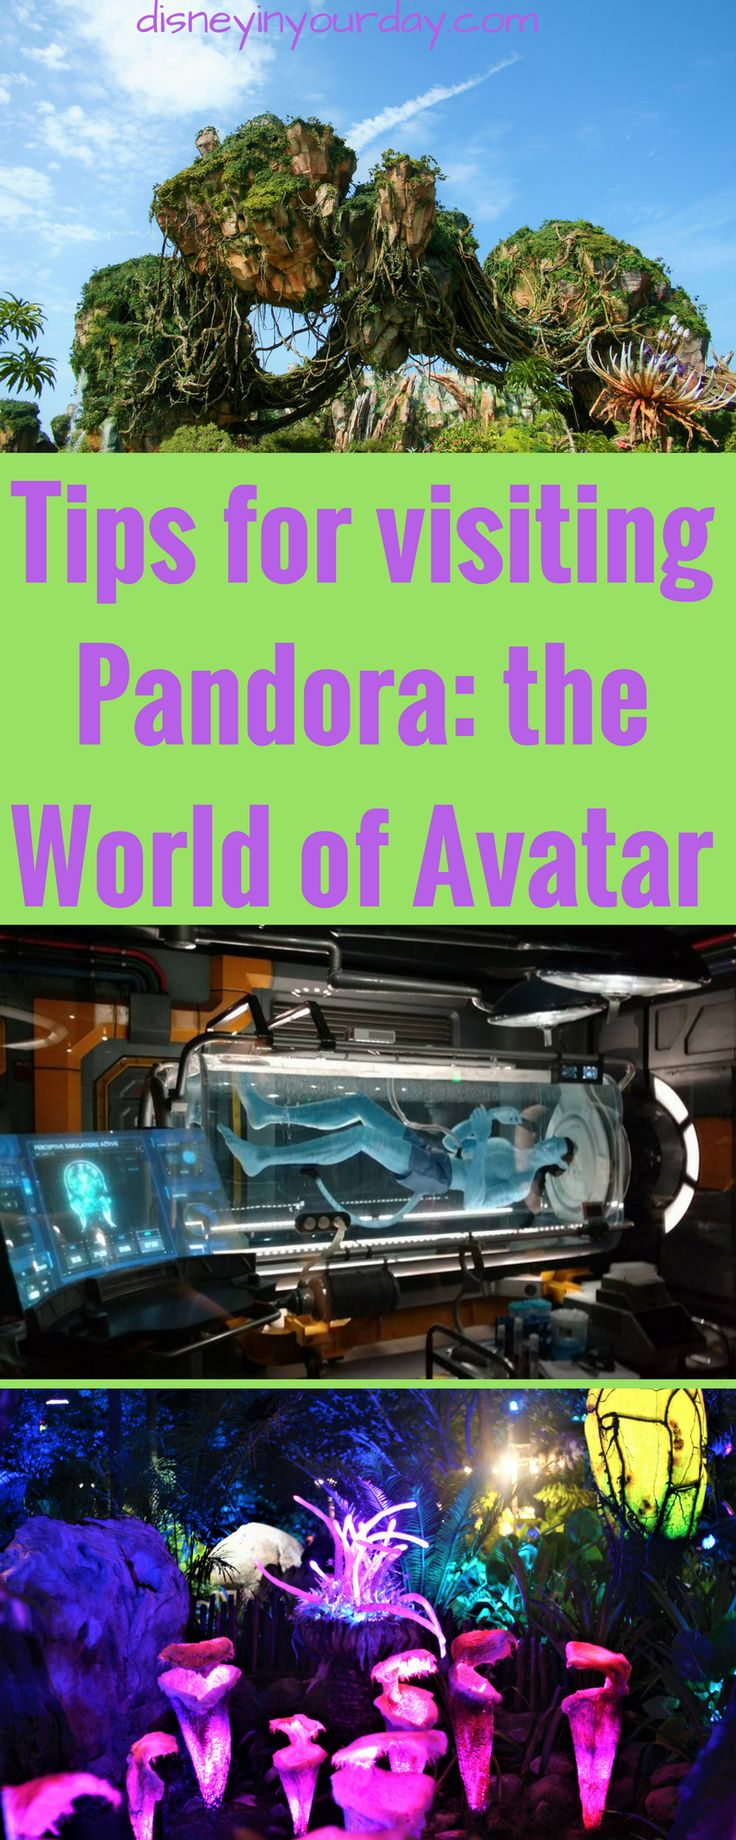 Tips for visiting Pandora: The World of Avatar - Disney in your Day